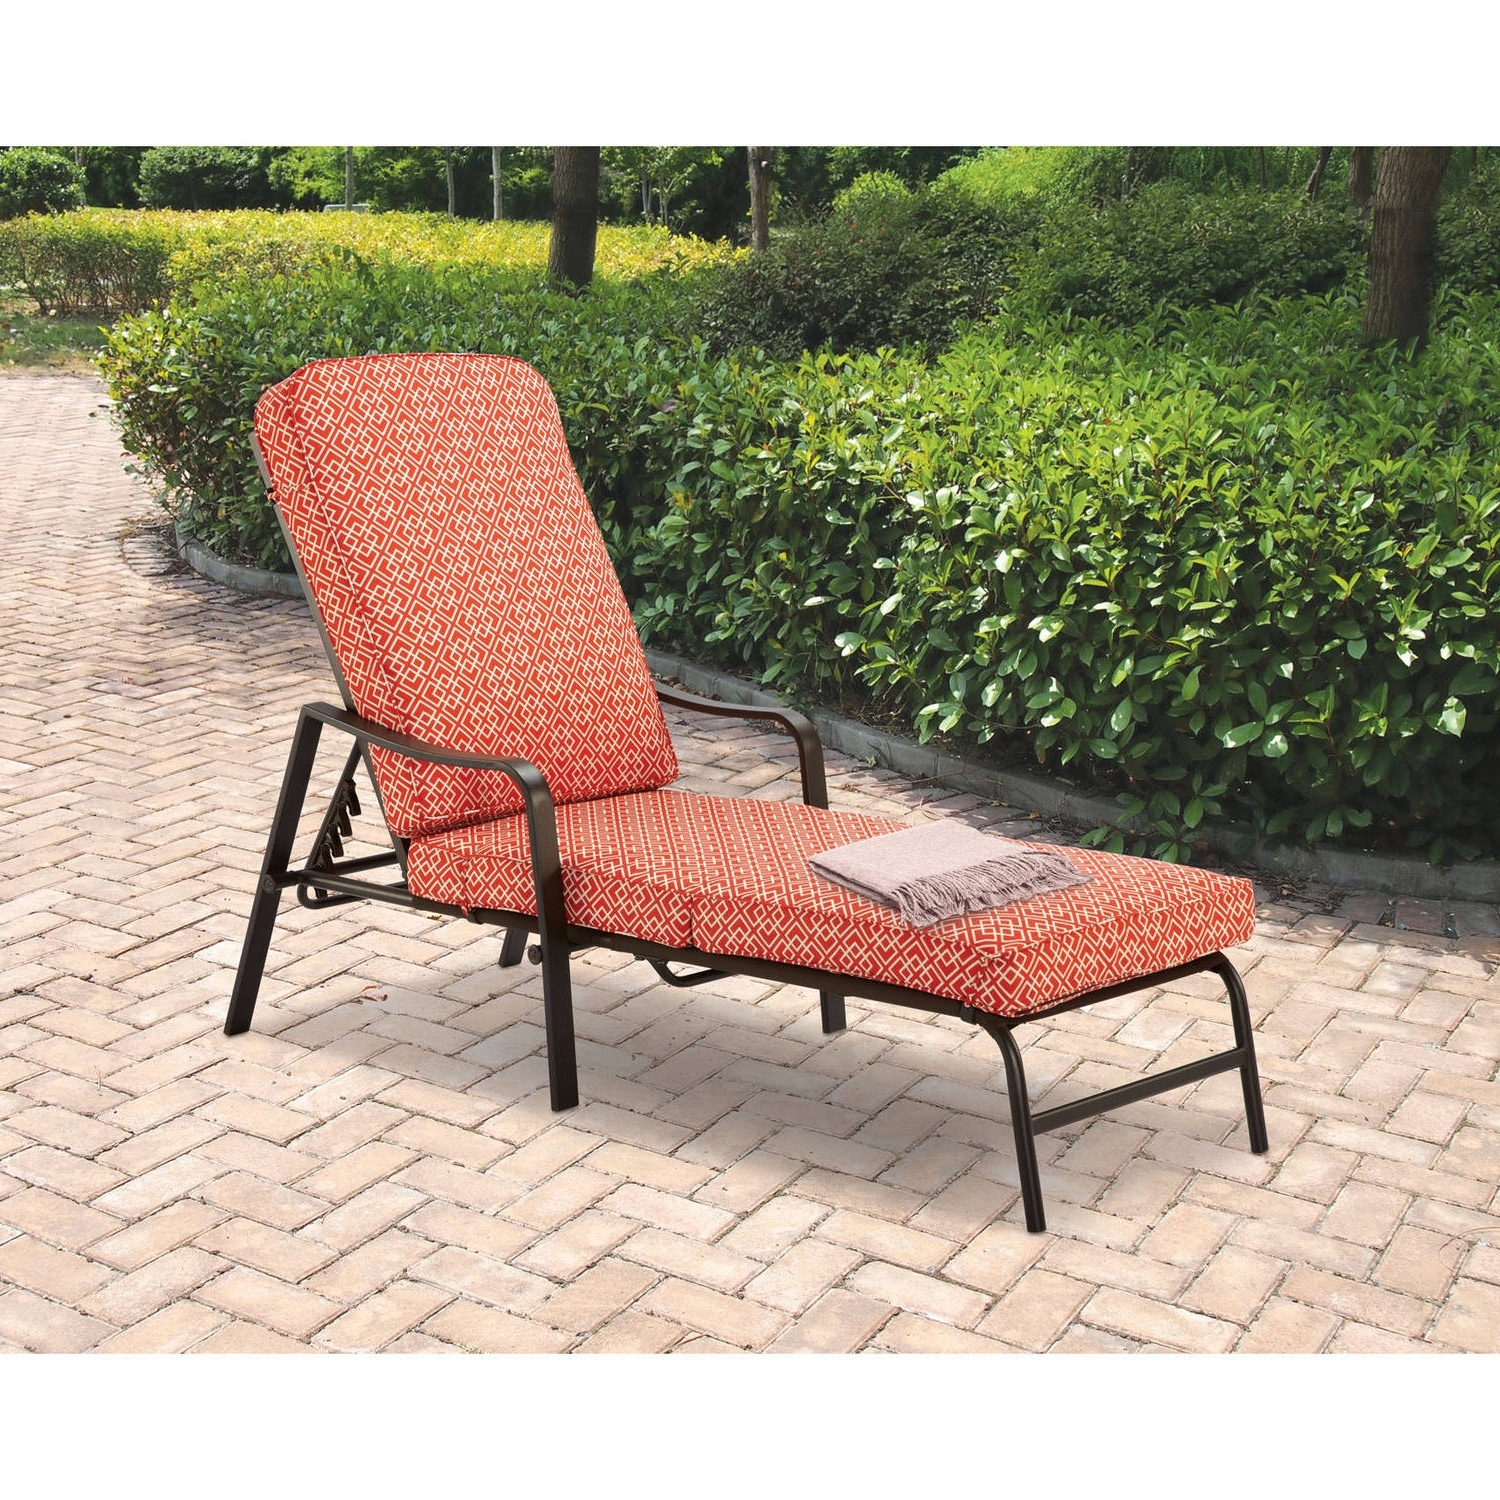 Mainstays Outdoor Chaise Lounge, Orange Geo Pattern – Walmart In Widely Used Chaise Lounge Chairs With Cushions (View 11 of 15)